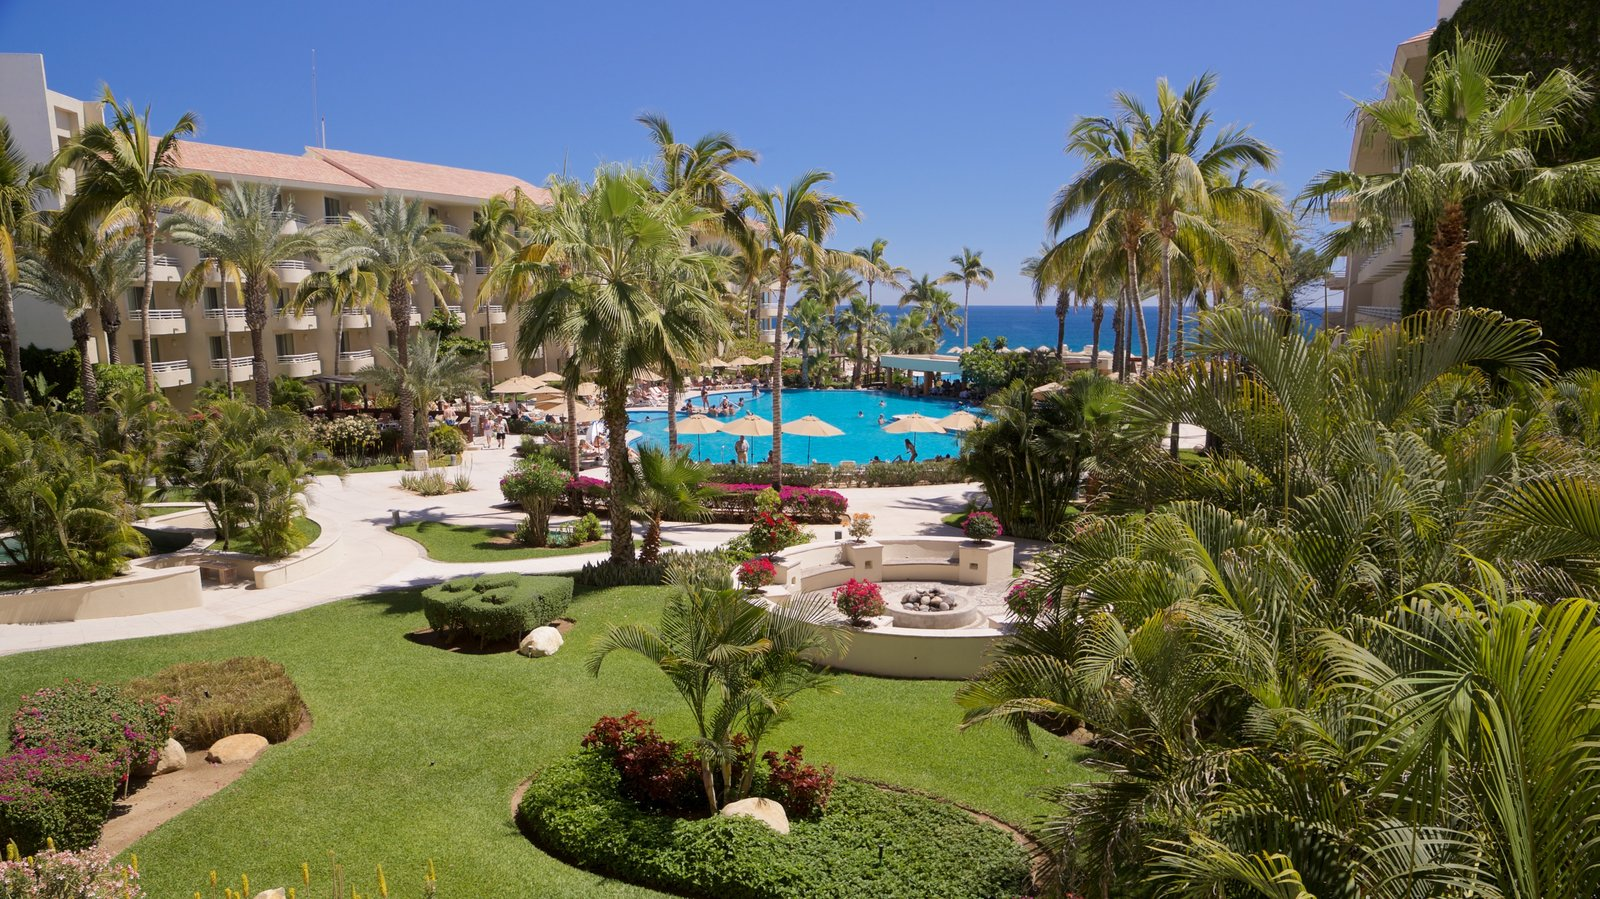 Zona Hotelera which includes a garden, tropical scenes and a hotel